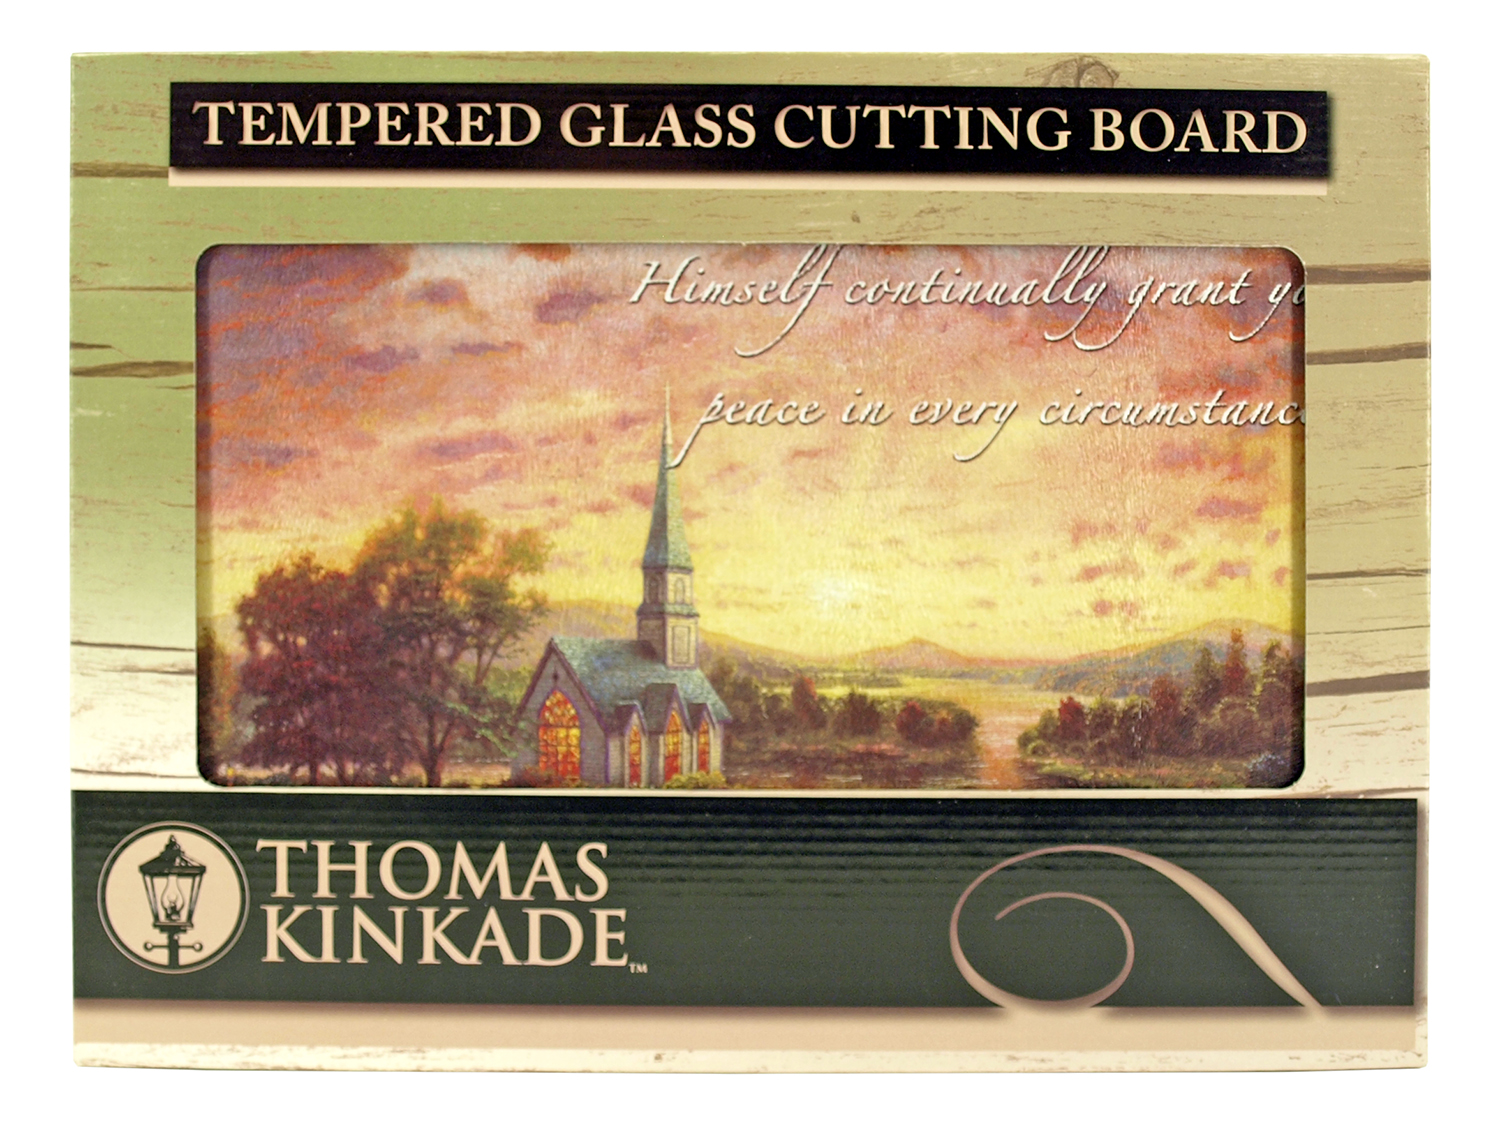 16 in x 12 in Thomas Kinkade Tempered Glass Cutting Board - Sunrise Chapel